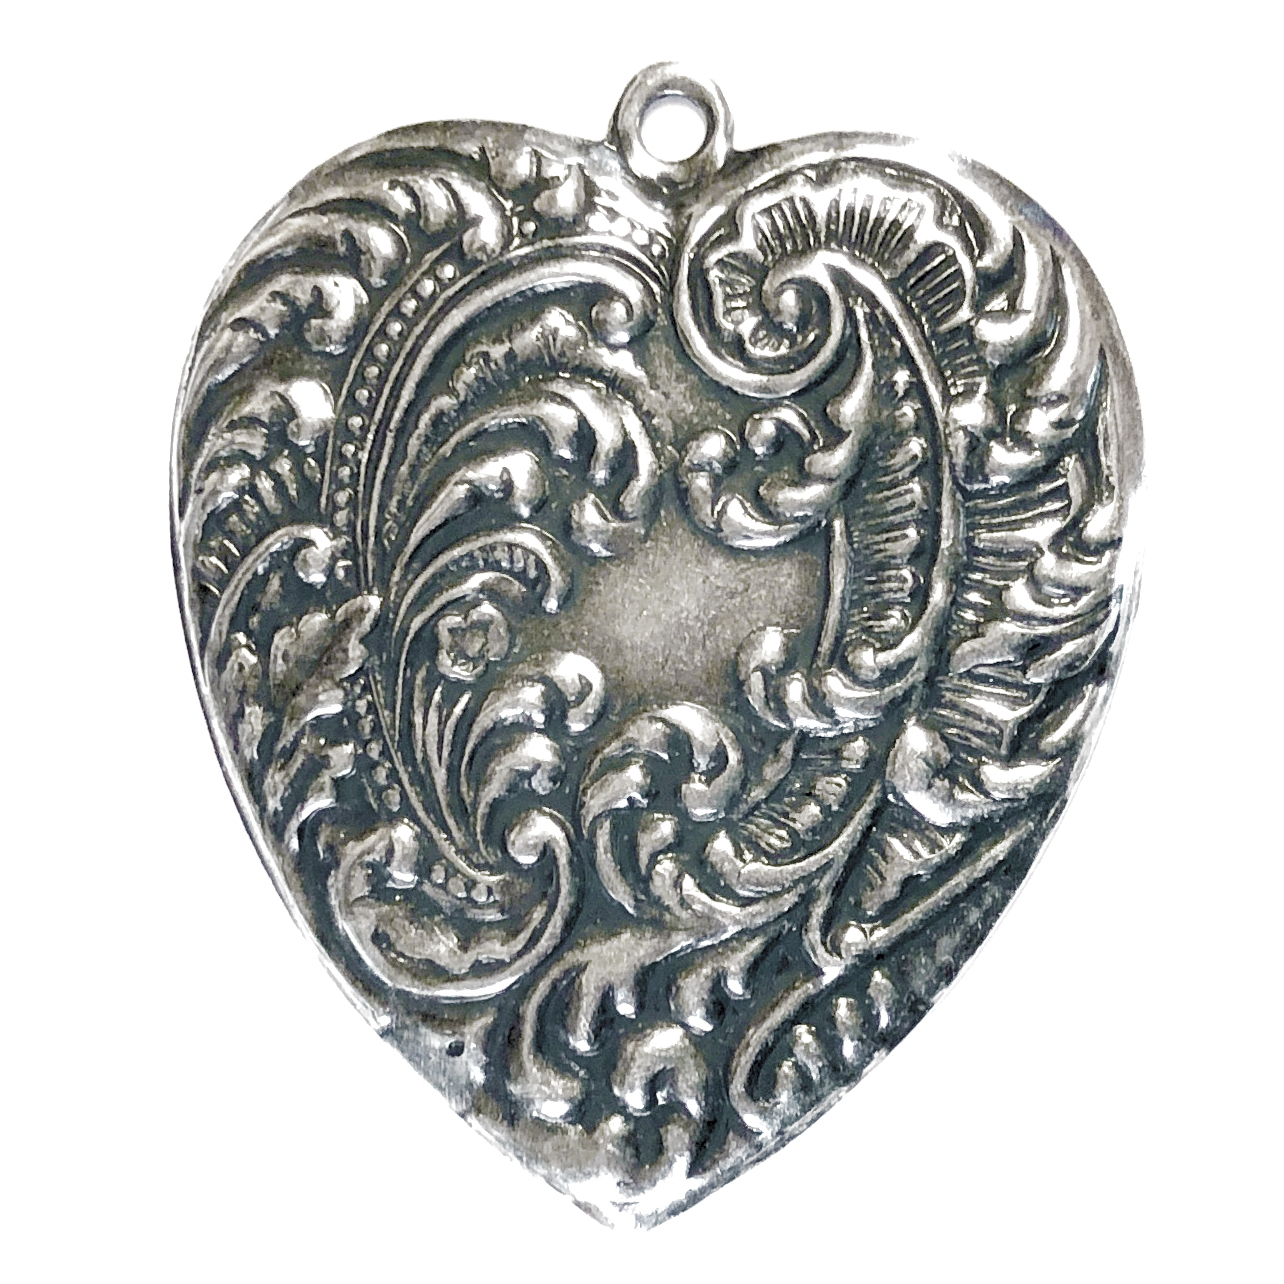 feathery heart pendant, brass stamping, silverware silver plate, nickel free, us made, 54mm, pendant, heart, heart pendant, jewelry findings, B'sue Boutiques, jewelry supplies, vintage supplies, jewelry making, antique silver, black antiquing, 09414